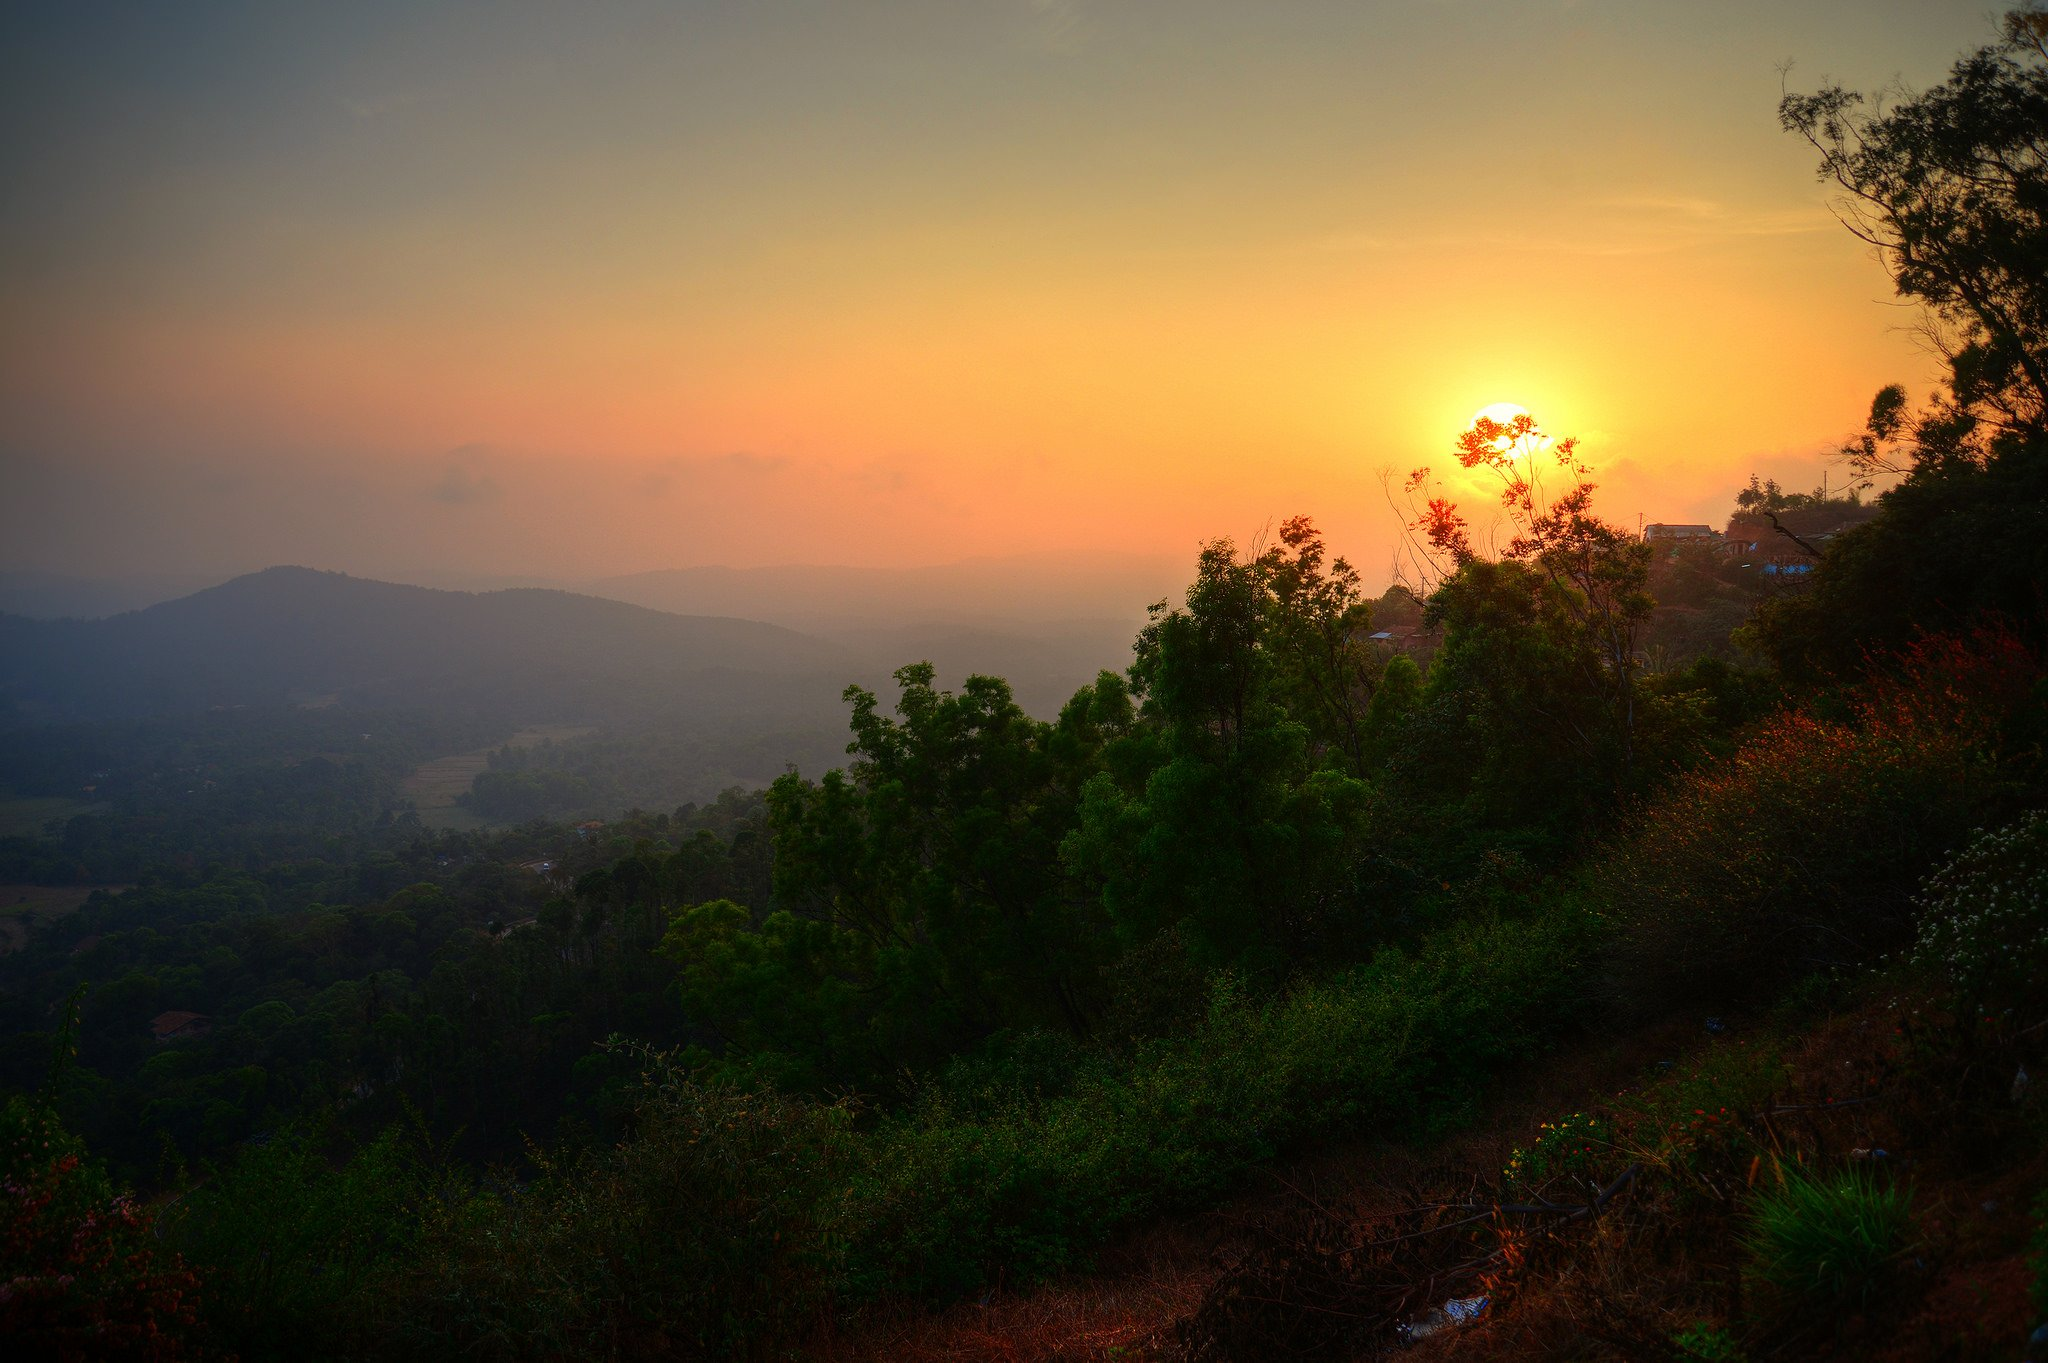 Sunset at Raja's Seat, Coorg